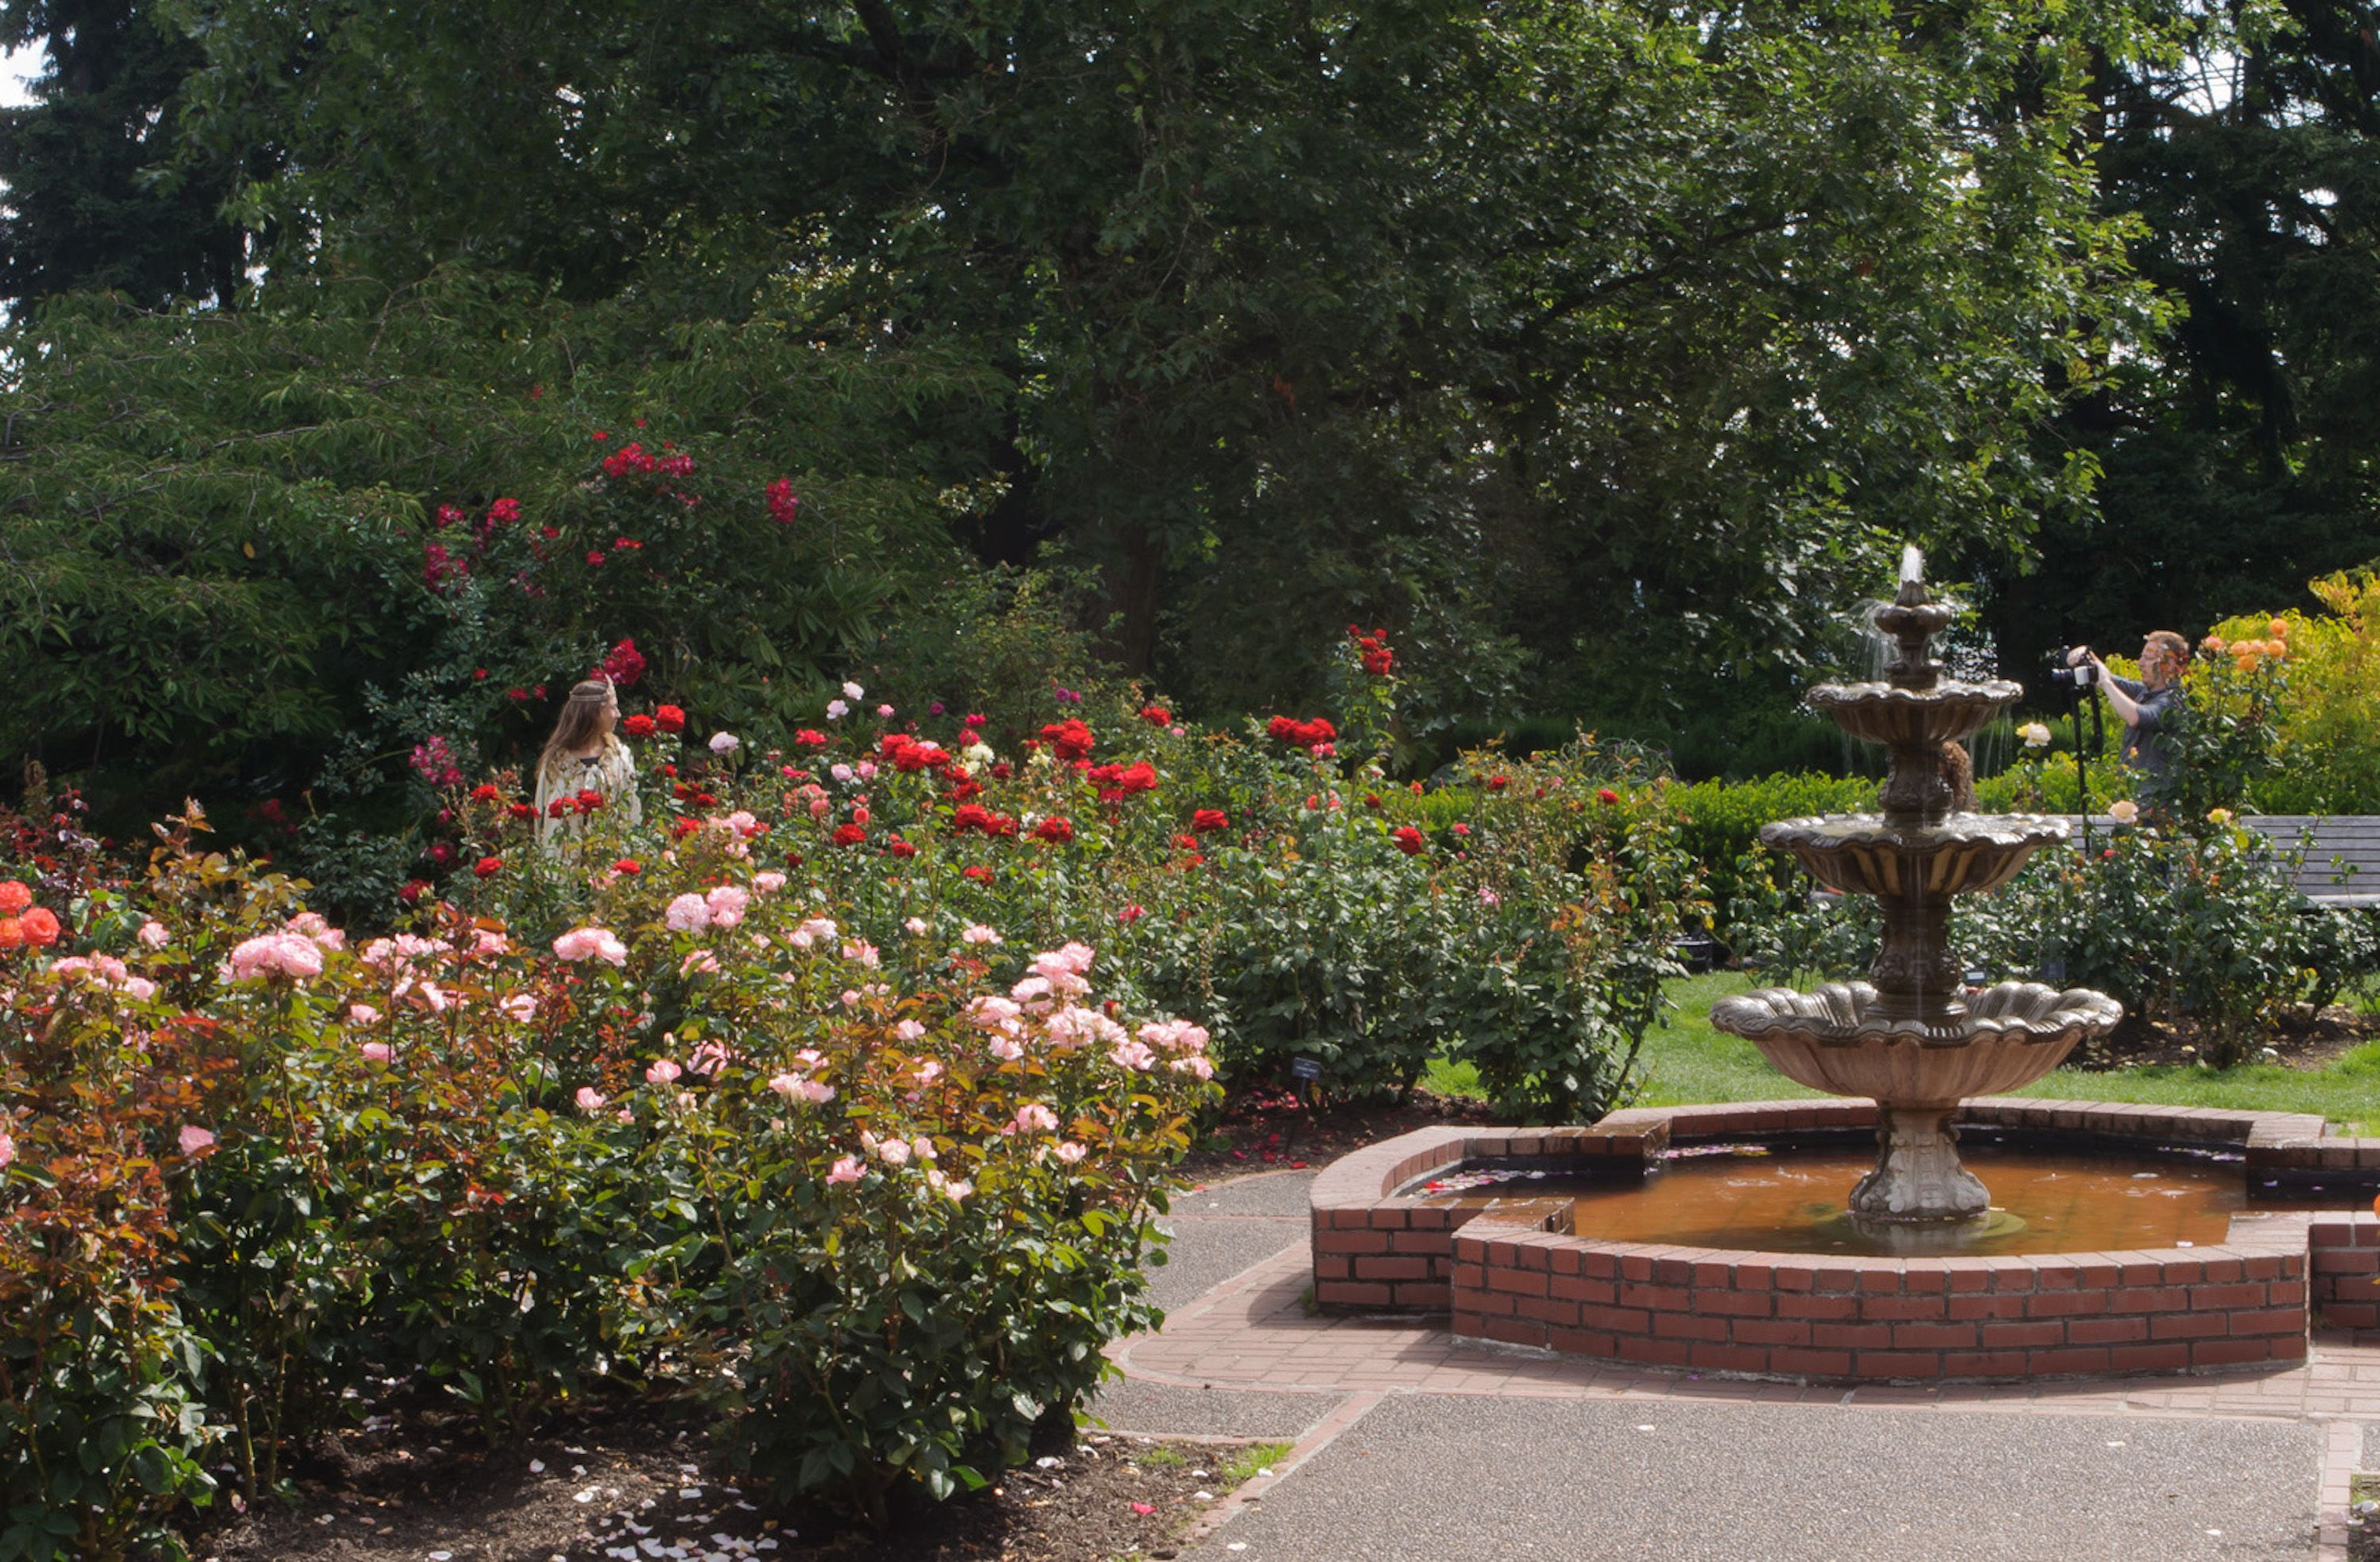 Roses In Garden: Things To Do At Washington Park In Portland Oregon